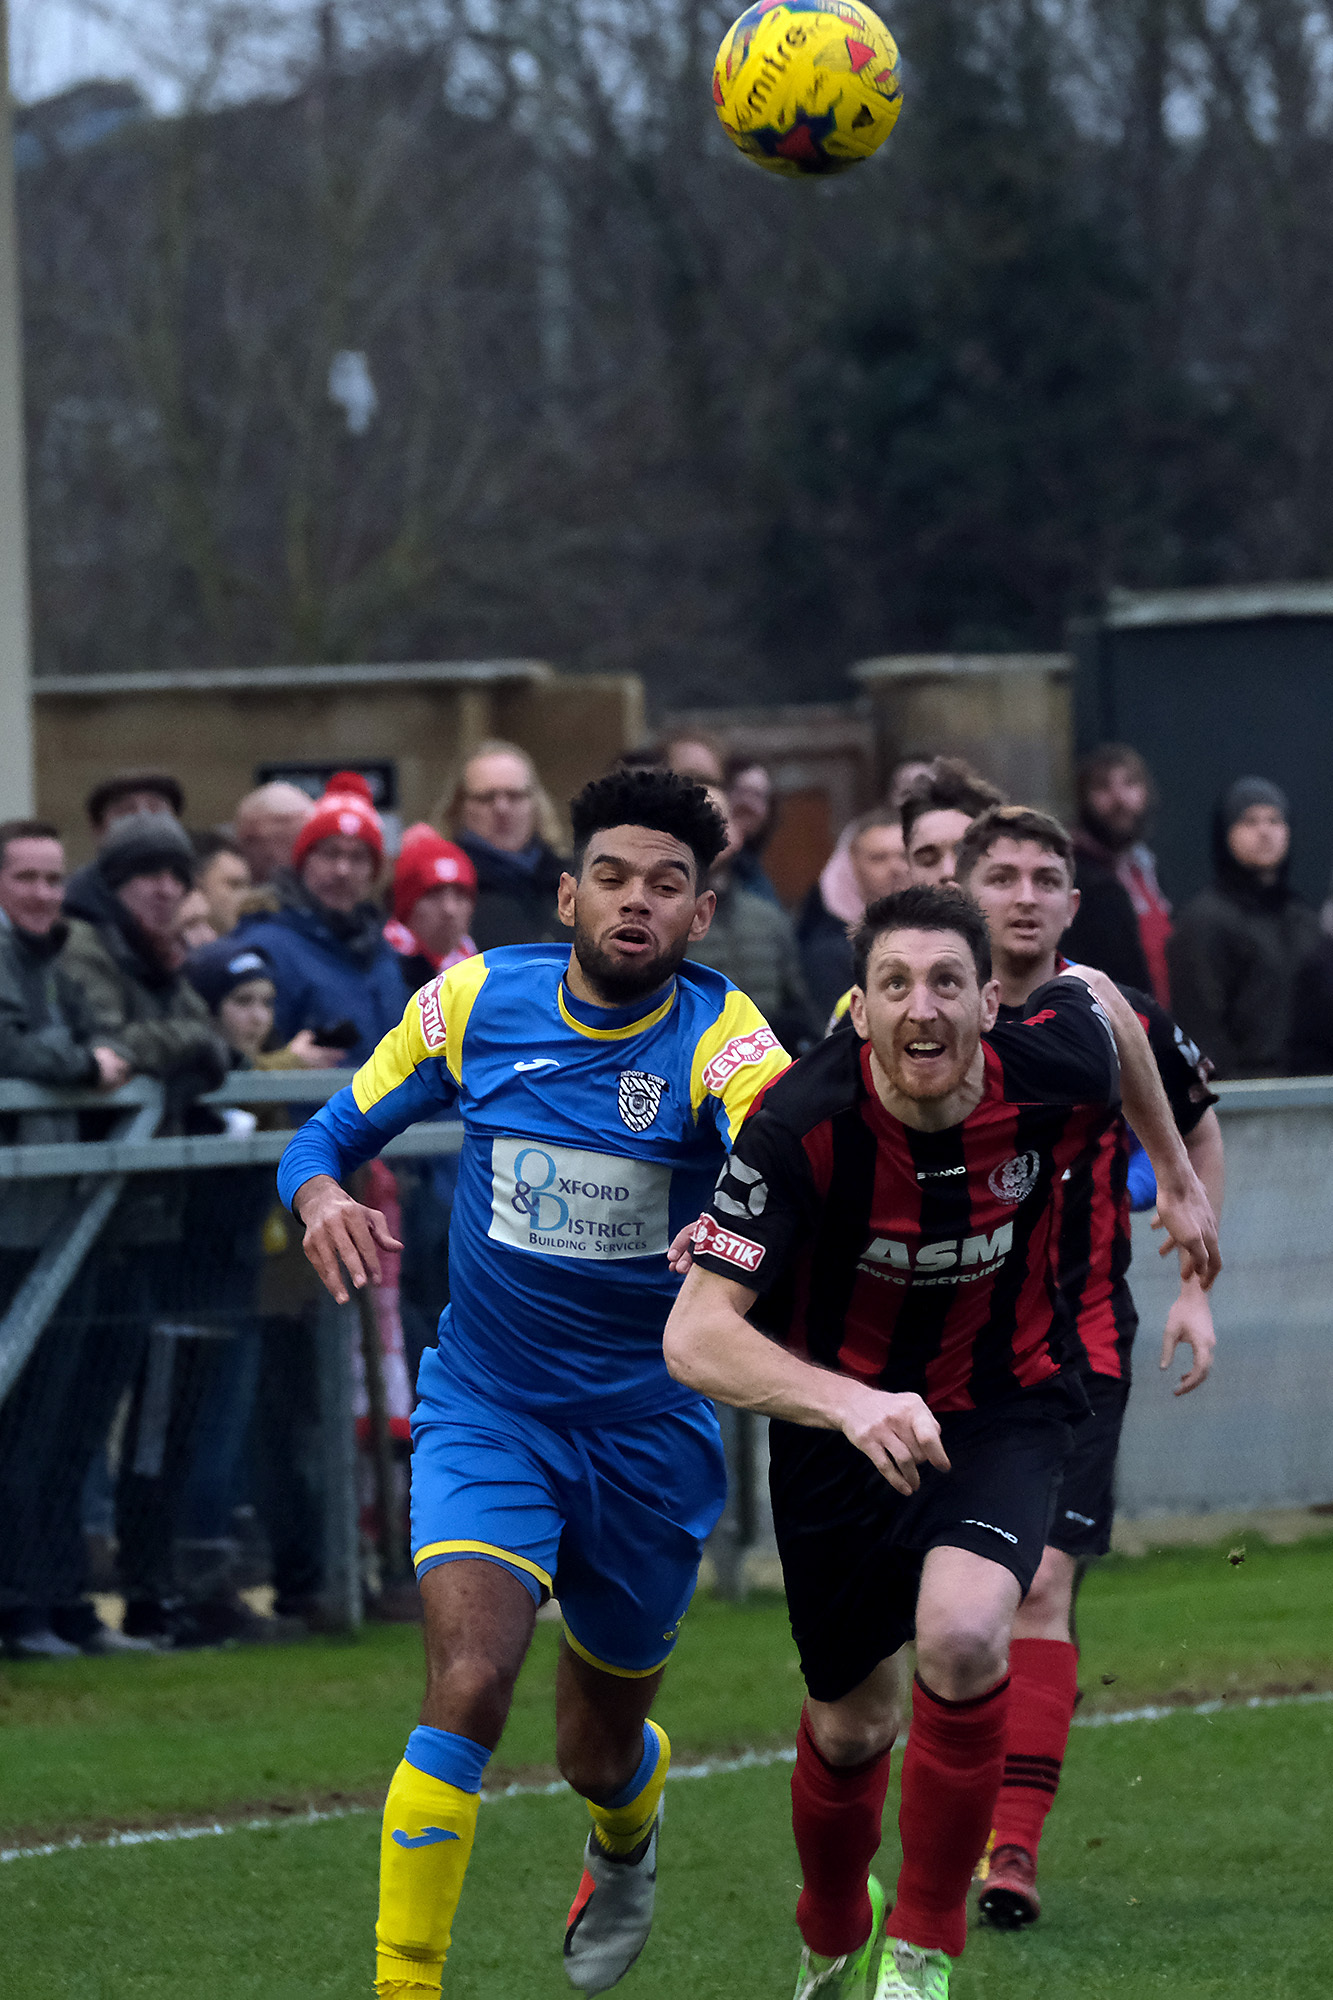 Thame's Andy Gledhill keeps his eyes on the ball as he chases wih Lance Williams during Thame's home 0-1 loss to Didcot .Picture: Ric Mellis.19/1/2019.